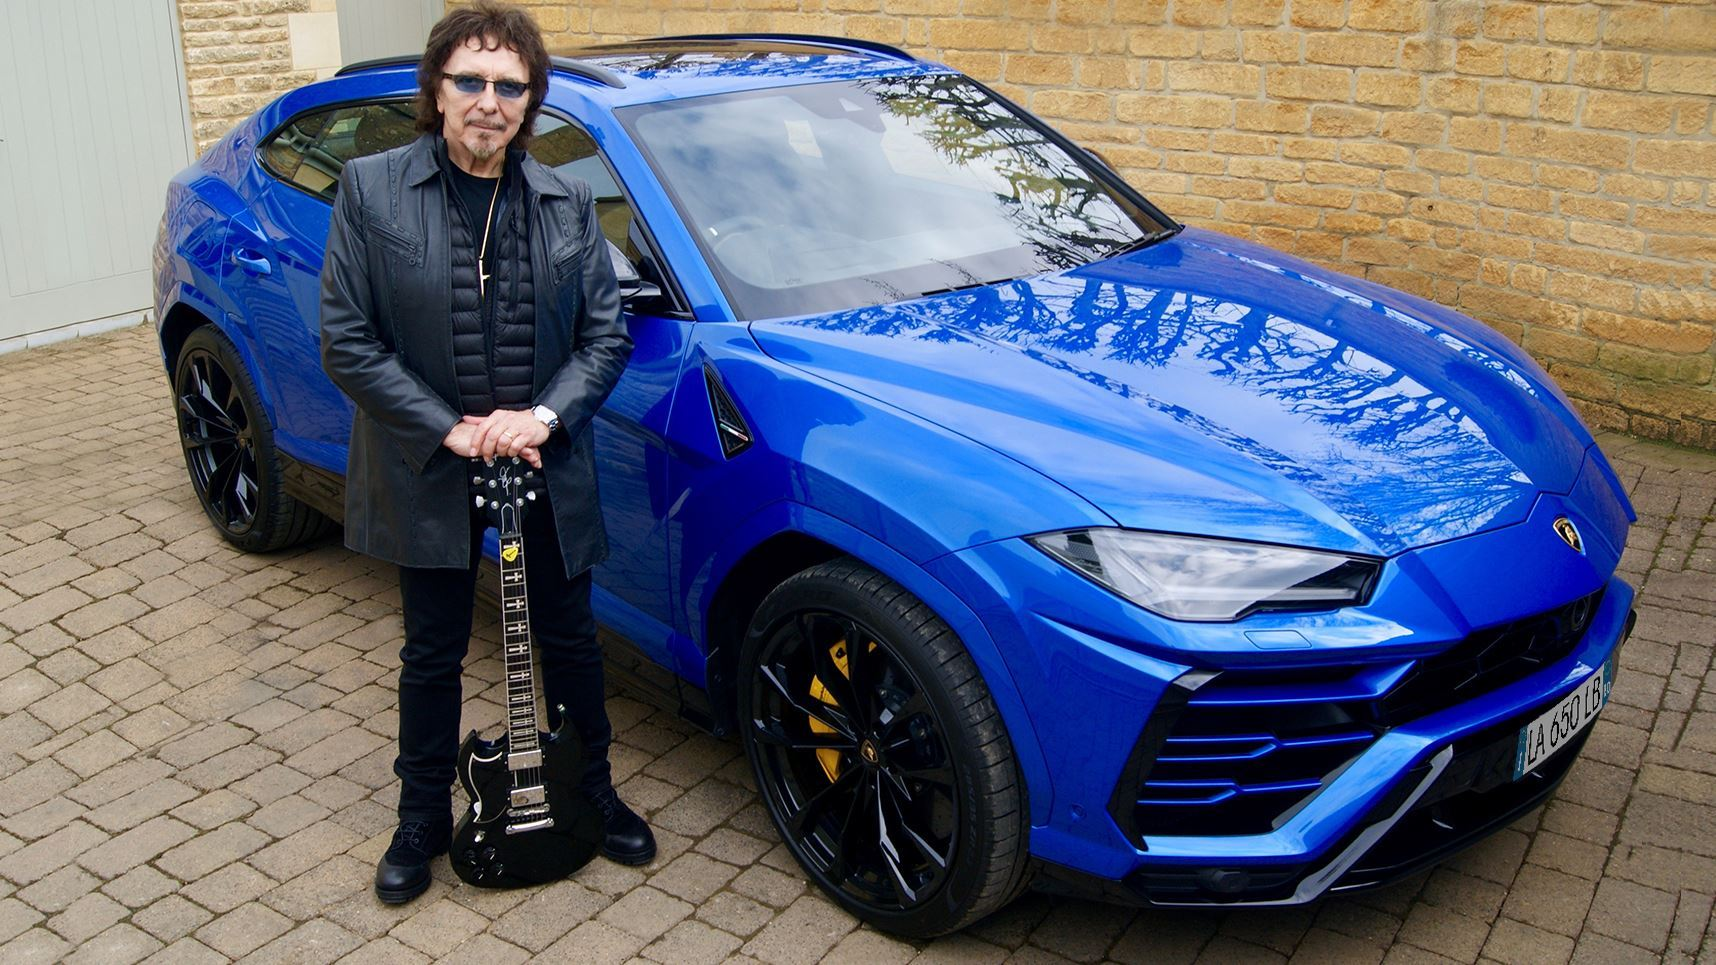 The link between Black Sabbath and Automobili Lamborghini: Rock legend Tony Iommi shares his passion for super sports cars from Sant'Agata Bolognese - Image 4